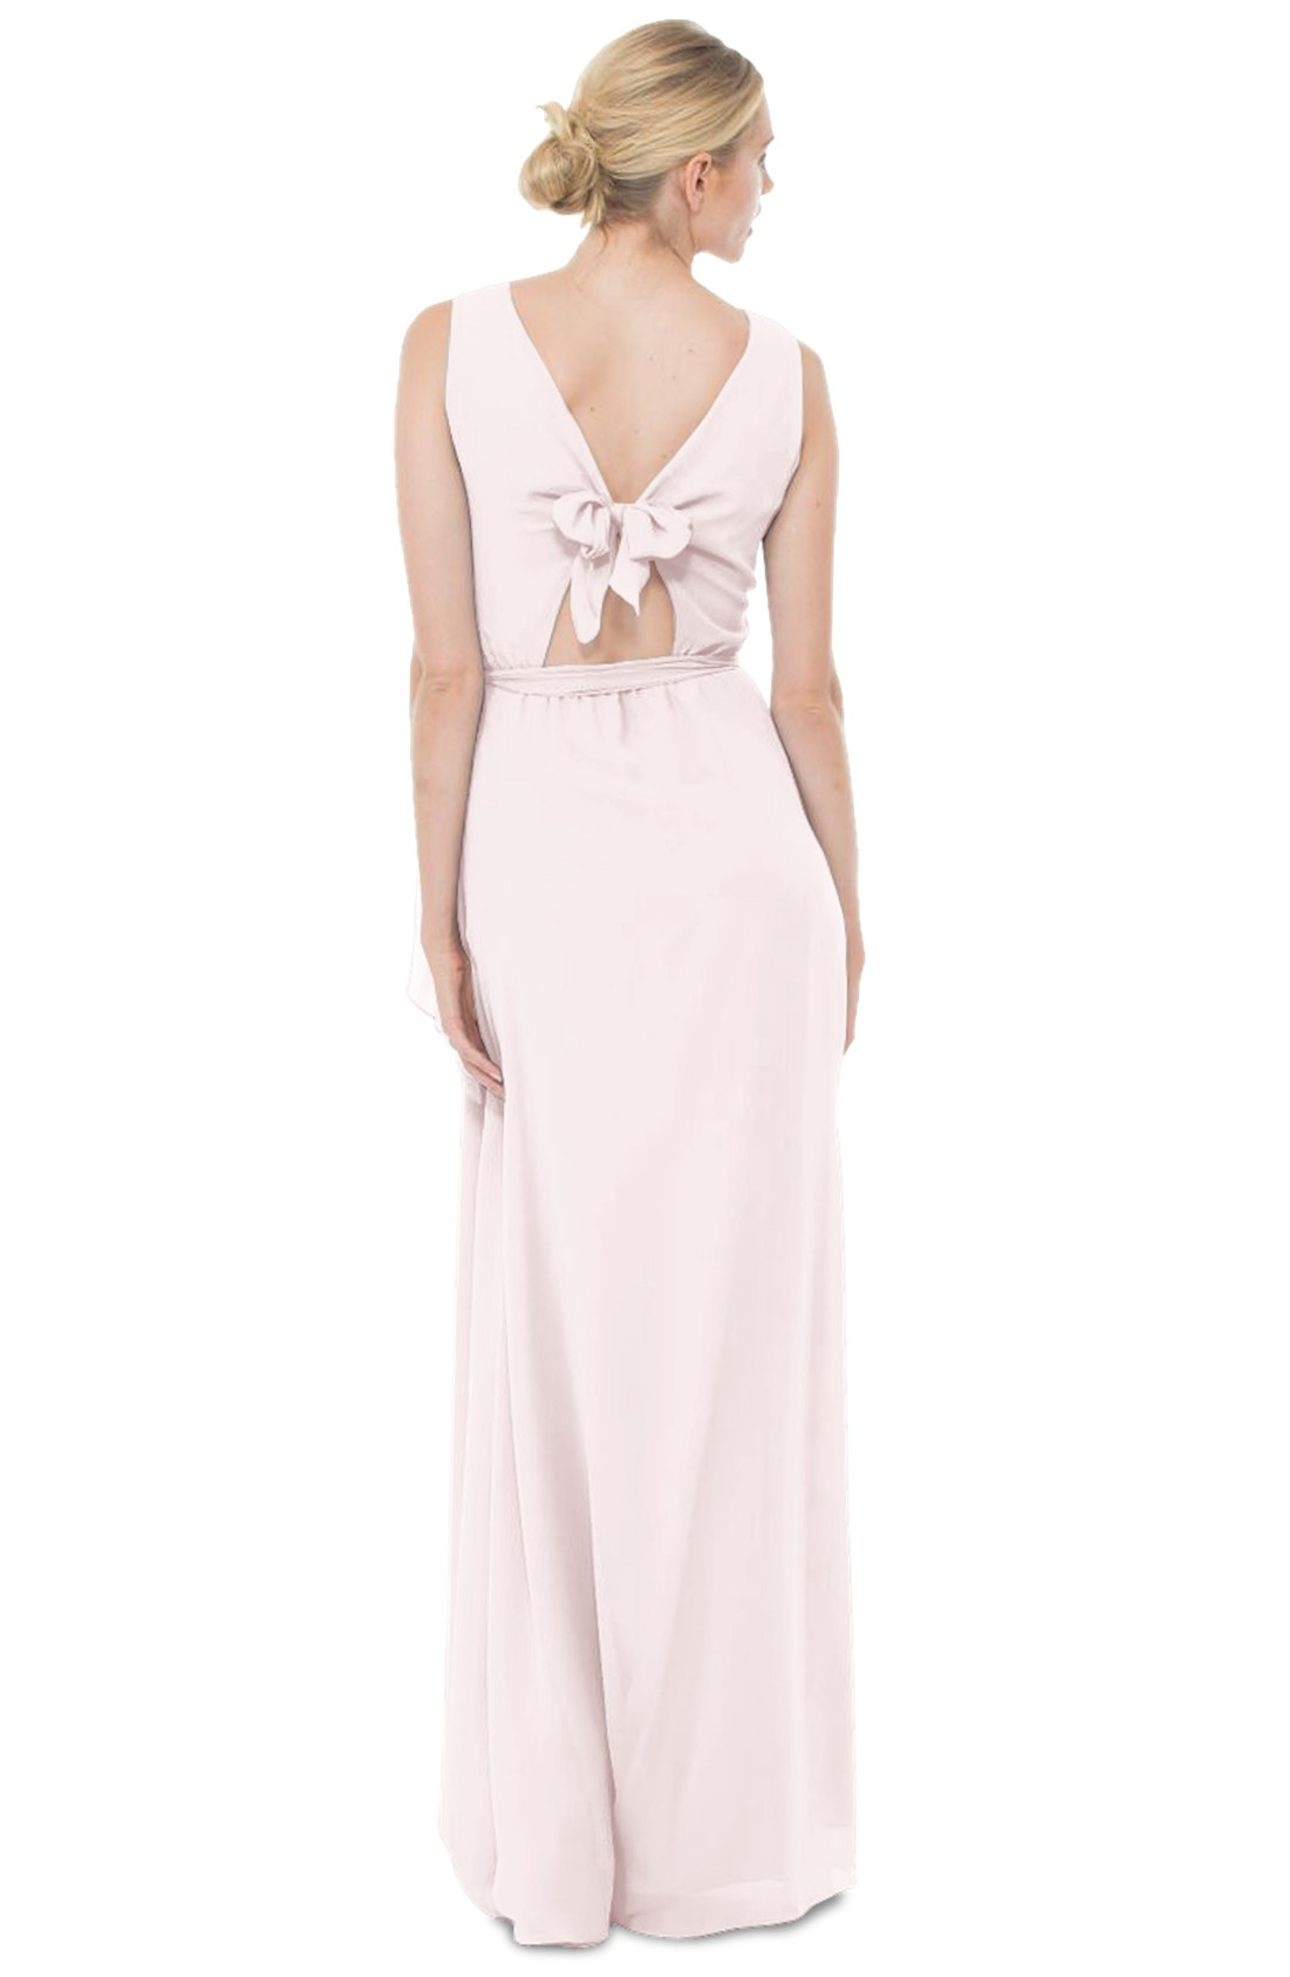 Ceremony by Joanna August, 'Tina' Tie Back Chiffon Gown - $285.00. (Image: Nordstrom)